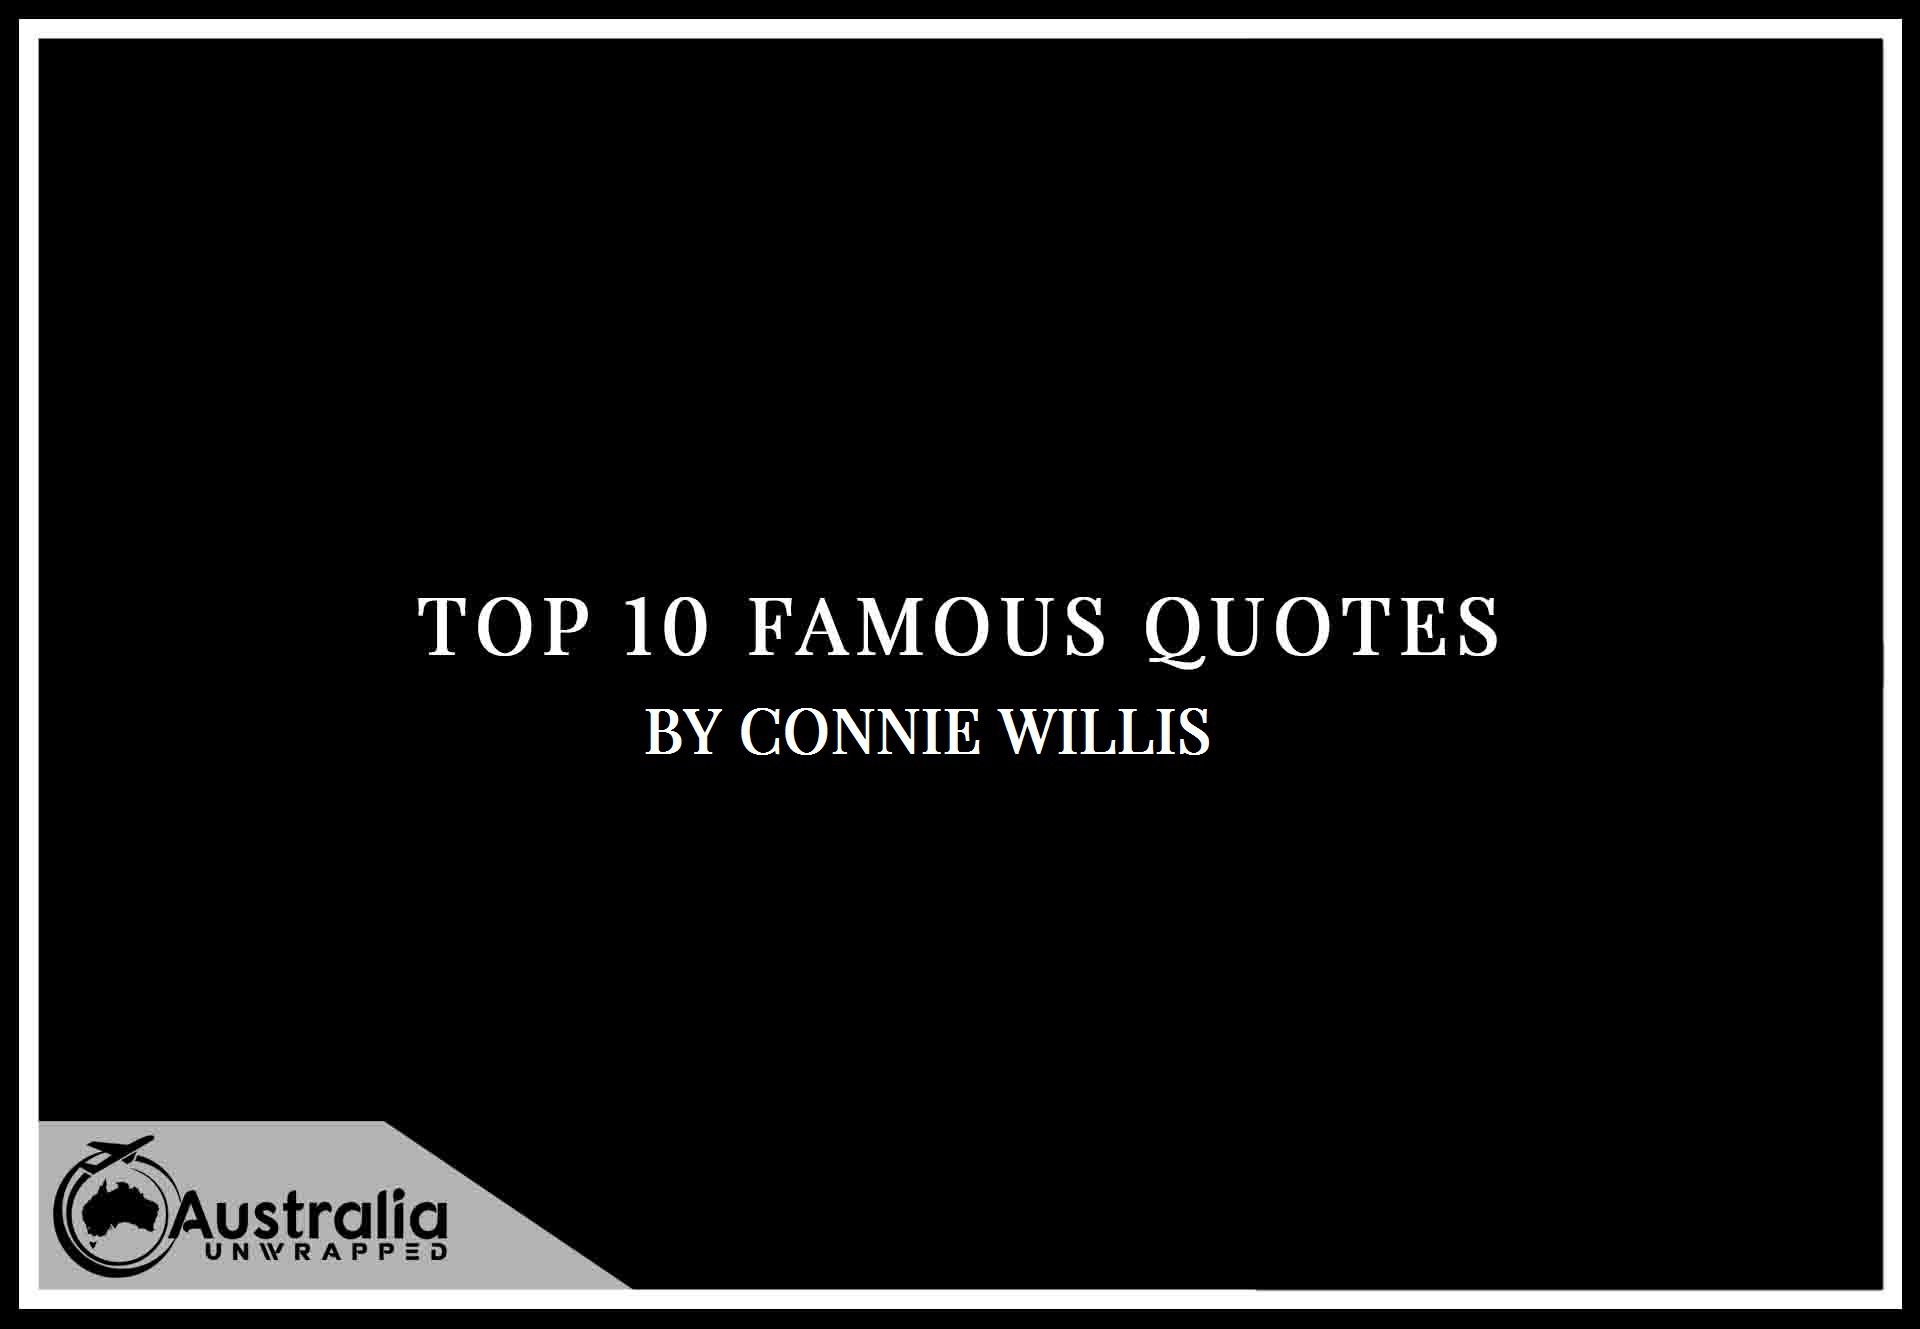 Connie Willis's Top 10 Popular and Famous Quotes